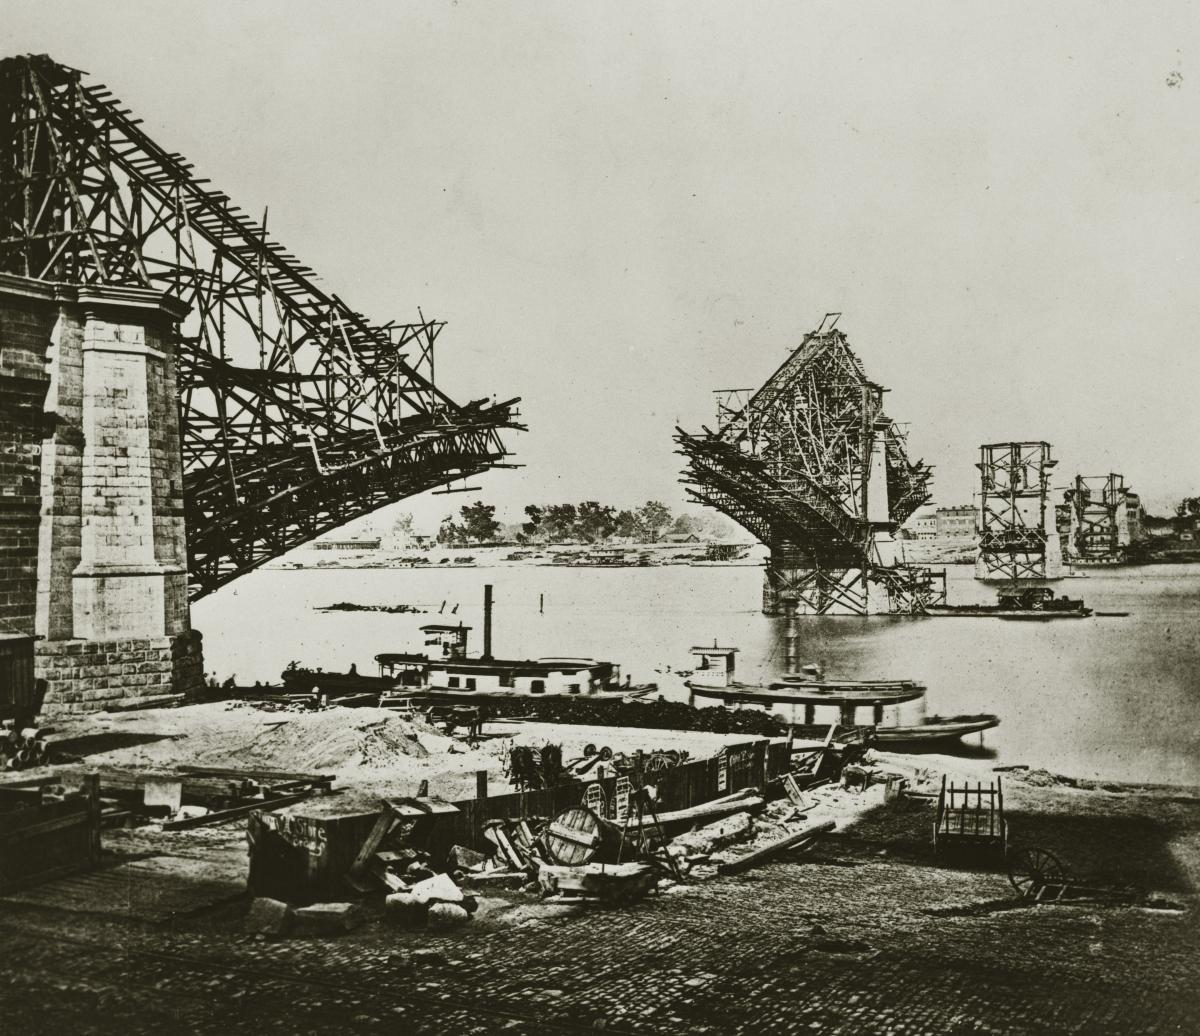 A black and white photograph of the Eads Bridge under construction in September 1873, looking northeast.